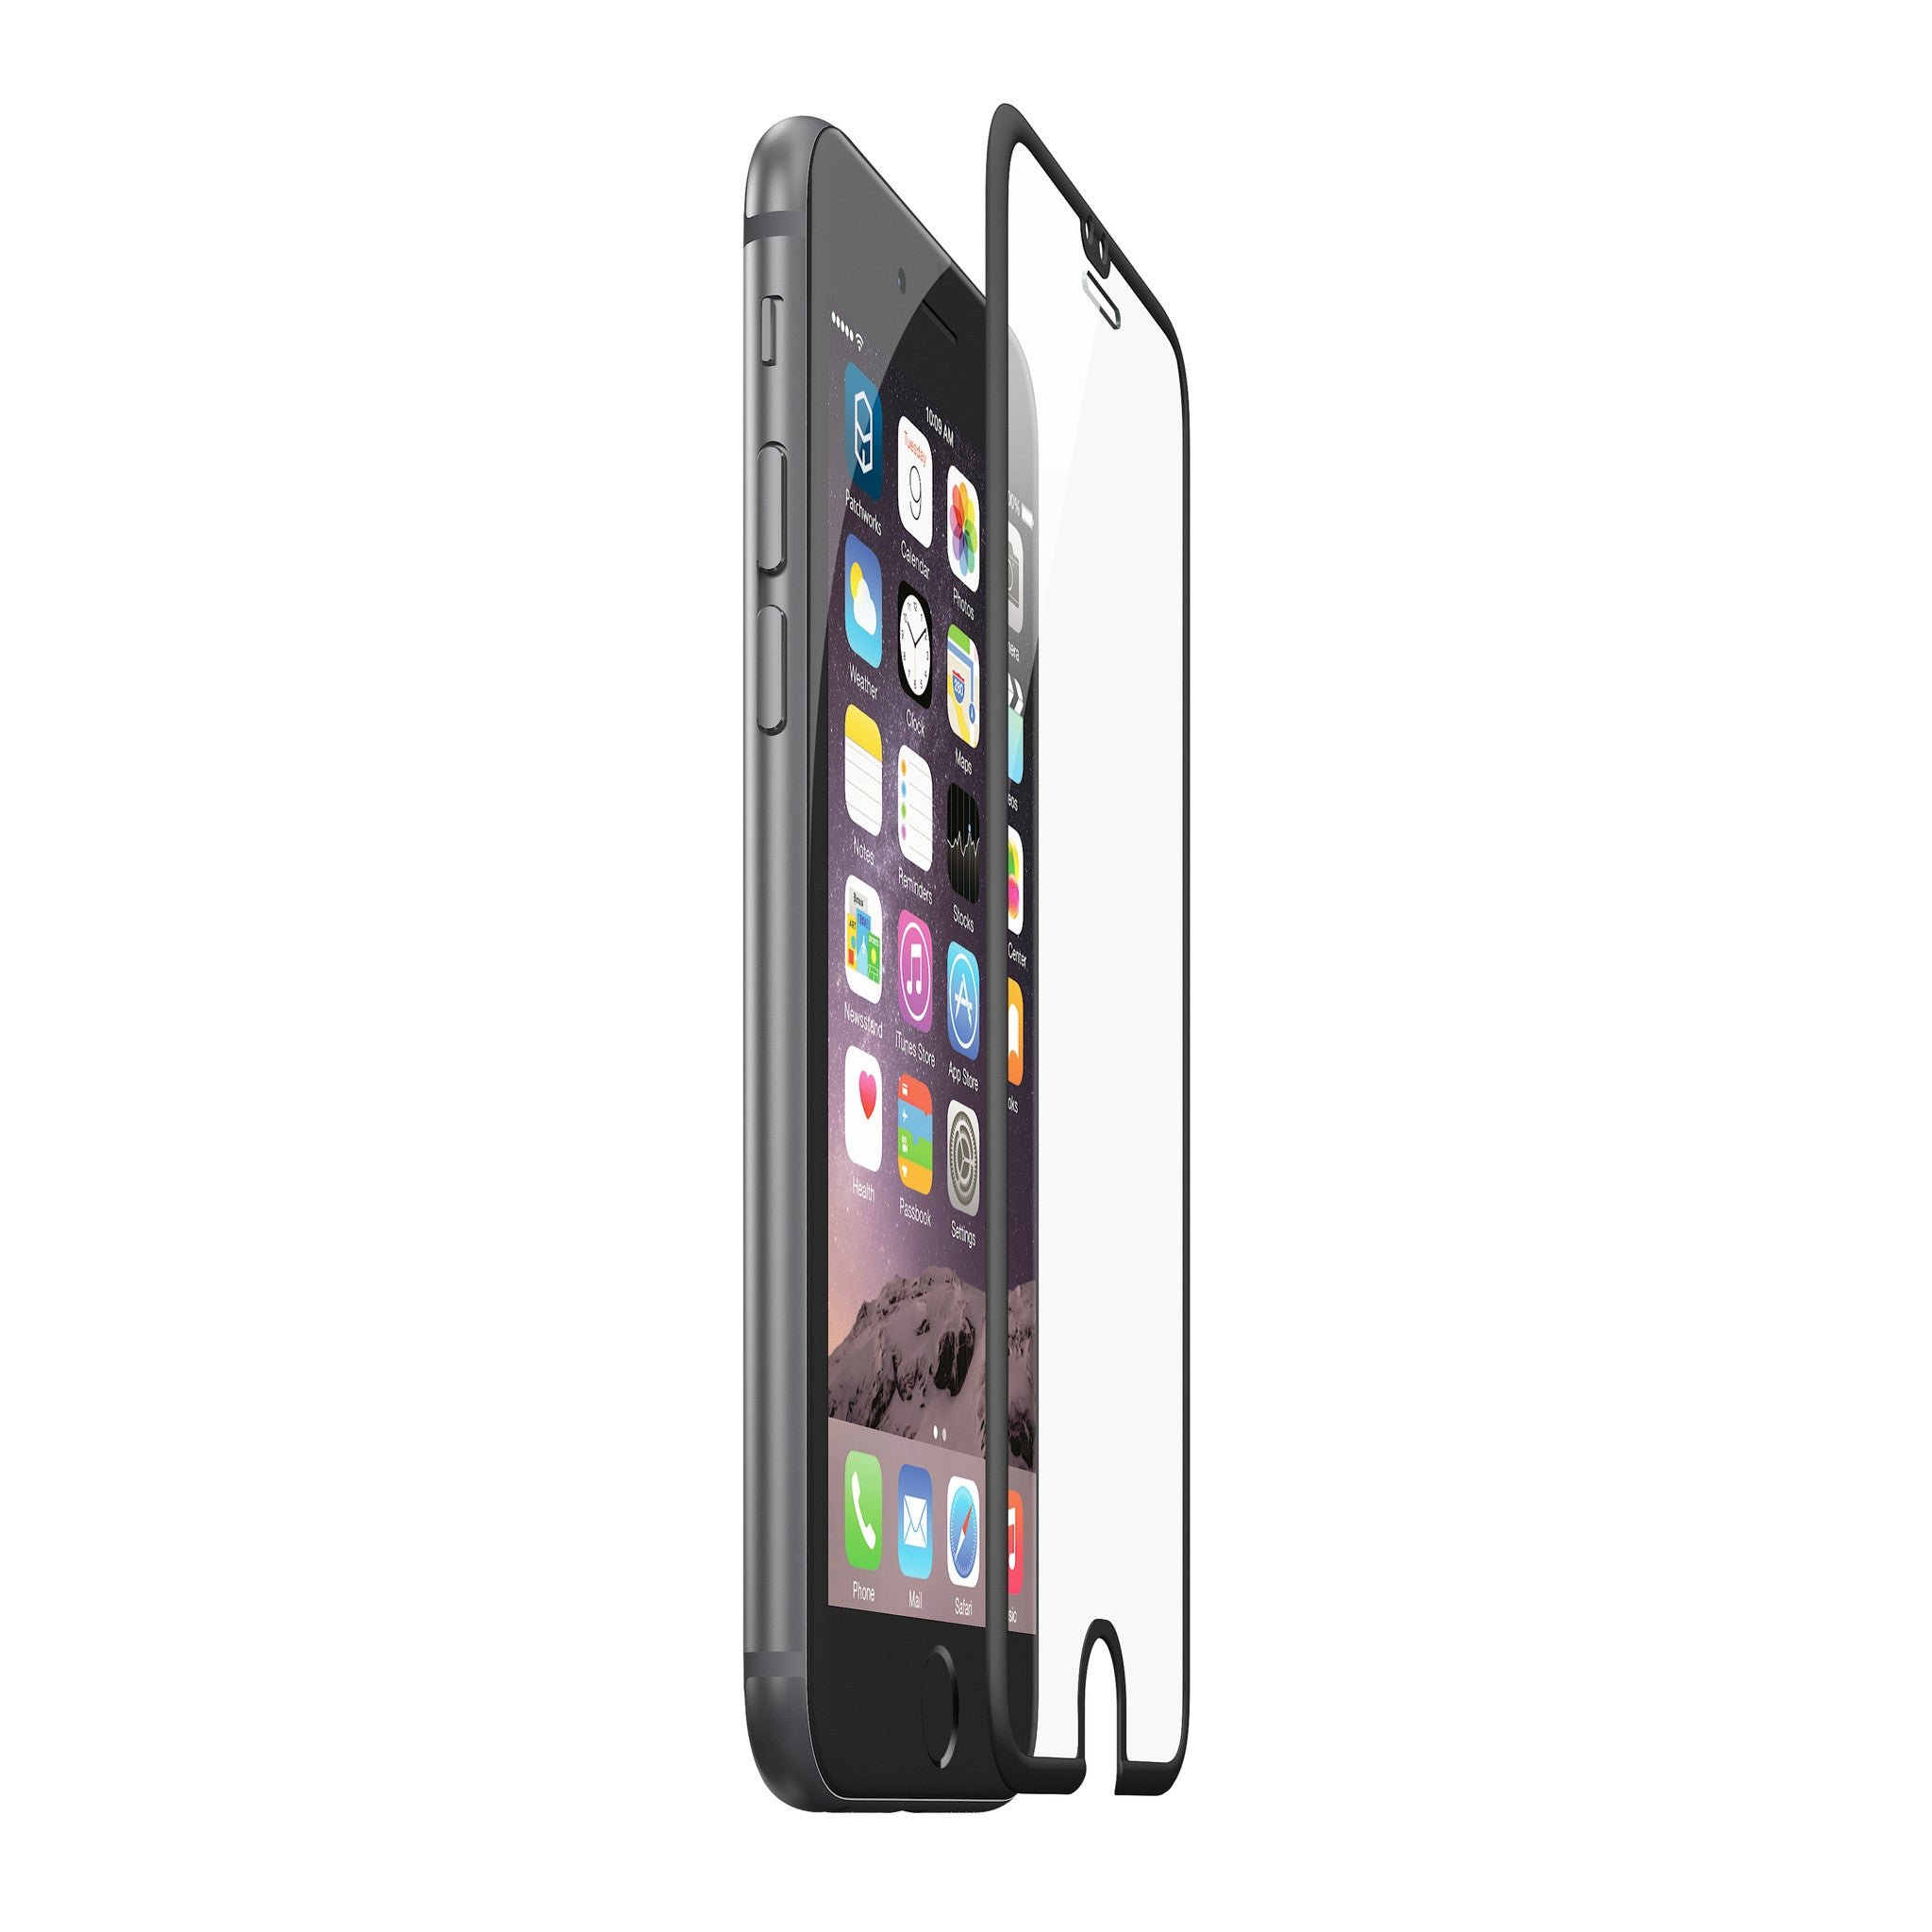 ITG Edge Tempered Glass for iPhone 6s & 6 - Patchworks Global Inc - 1